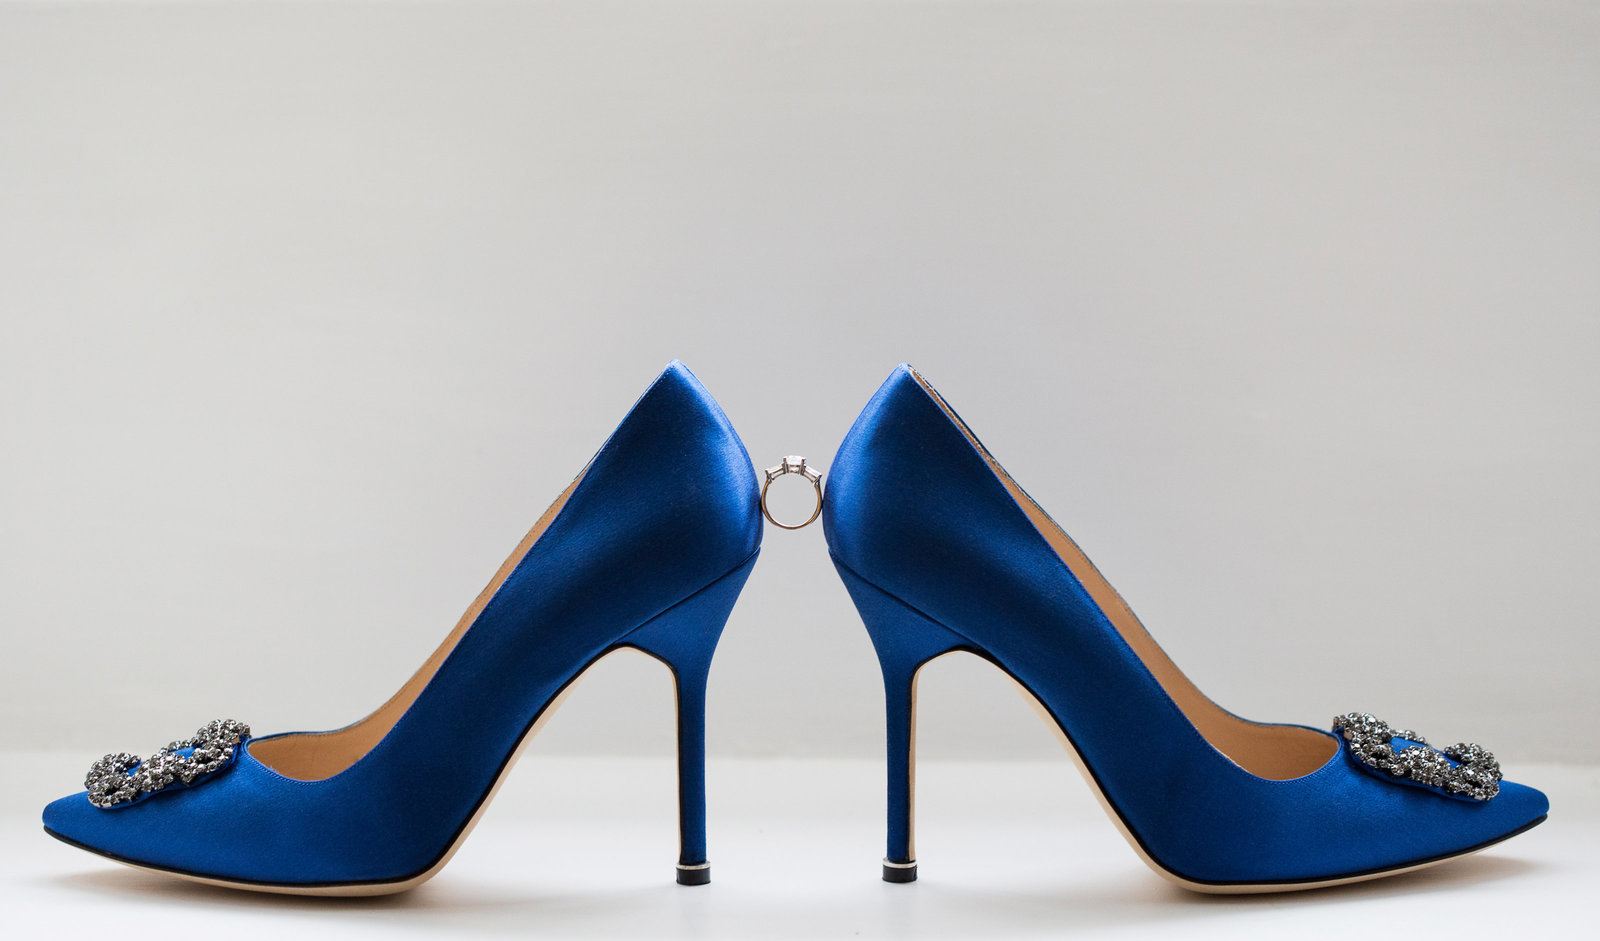 Stunning side on view of these something blue  Manolo Blahnik wedding shoes with engagement ring balancing between the shoes. Captured by Nicci at Adorlee